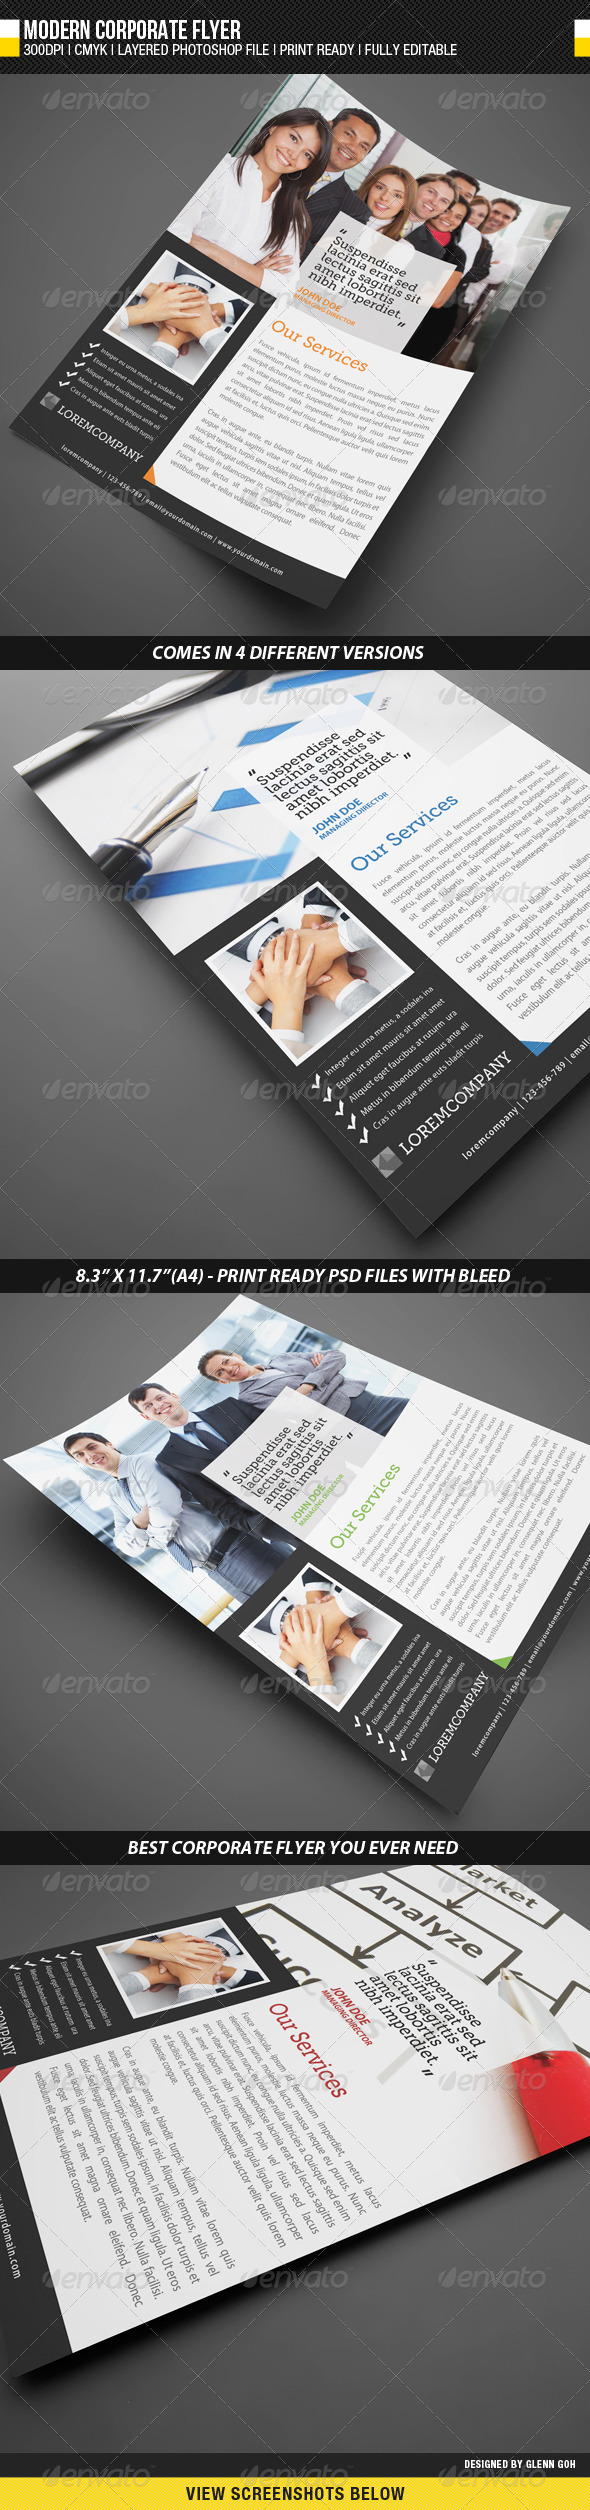 GraphicRiver Modern Corporate Flyer 1777132